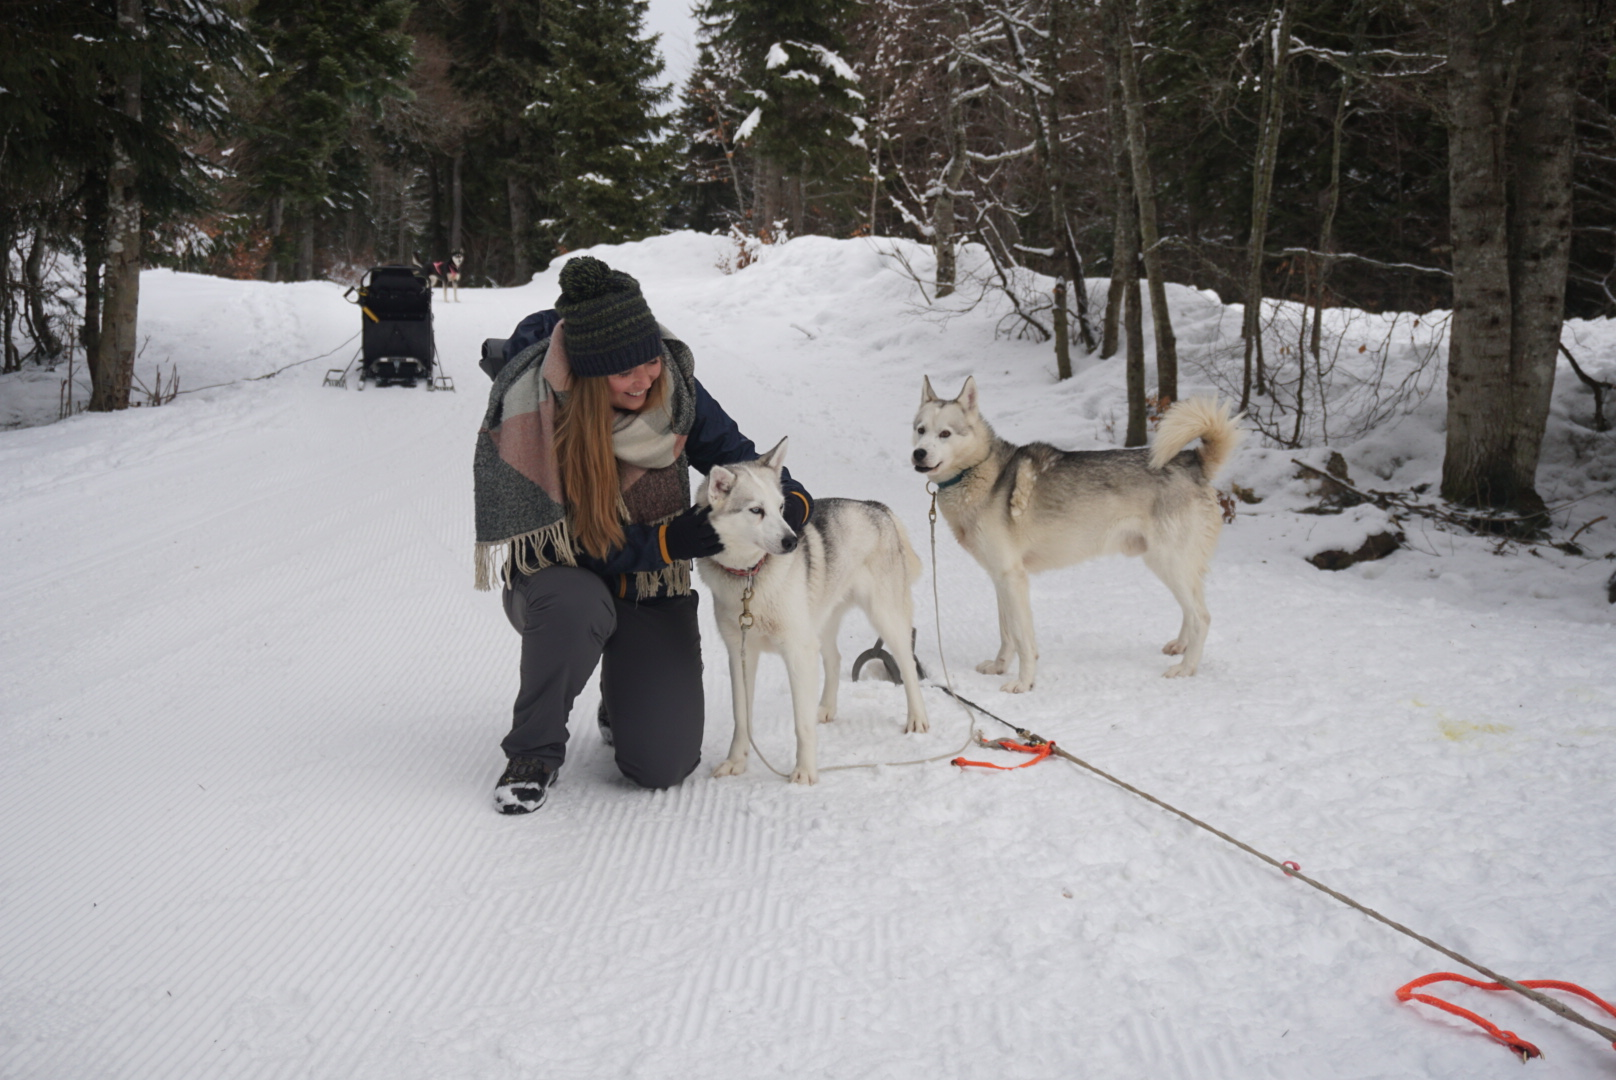 Dogsledding in Europe. It's even possible in France